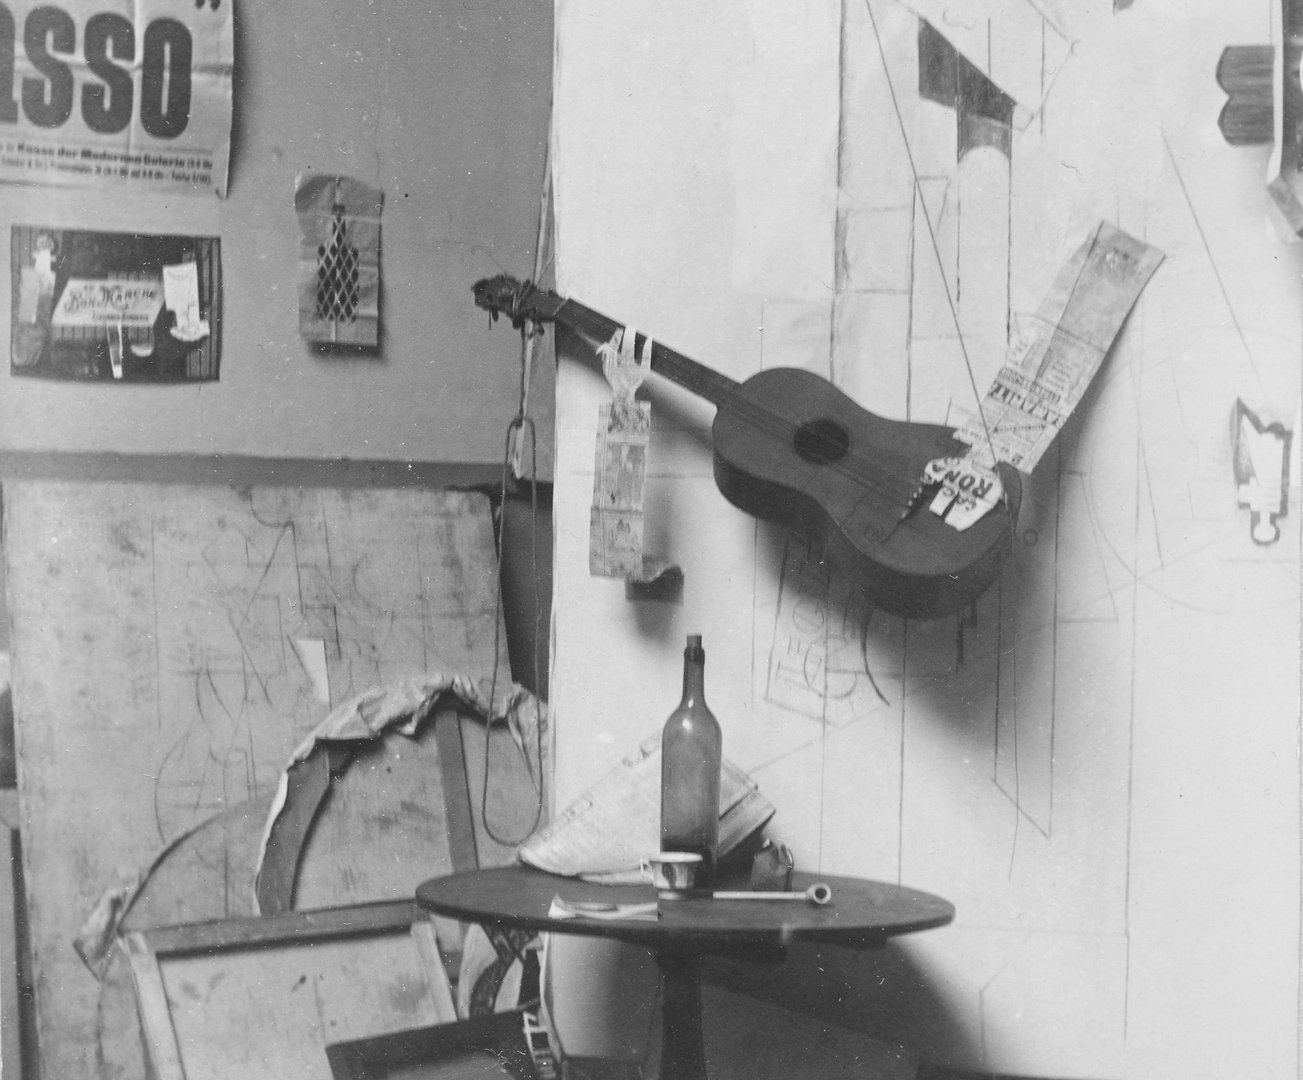 Pablo Picasso, composition photographique à la « Construction au joueur de guitare », 1913